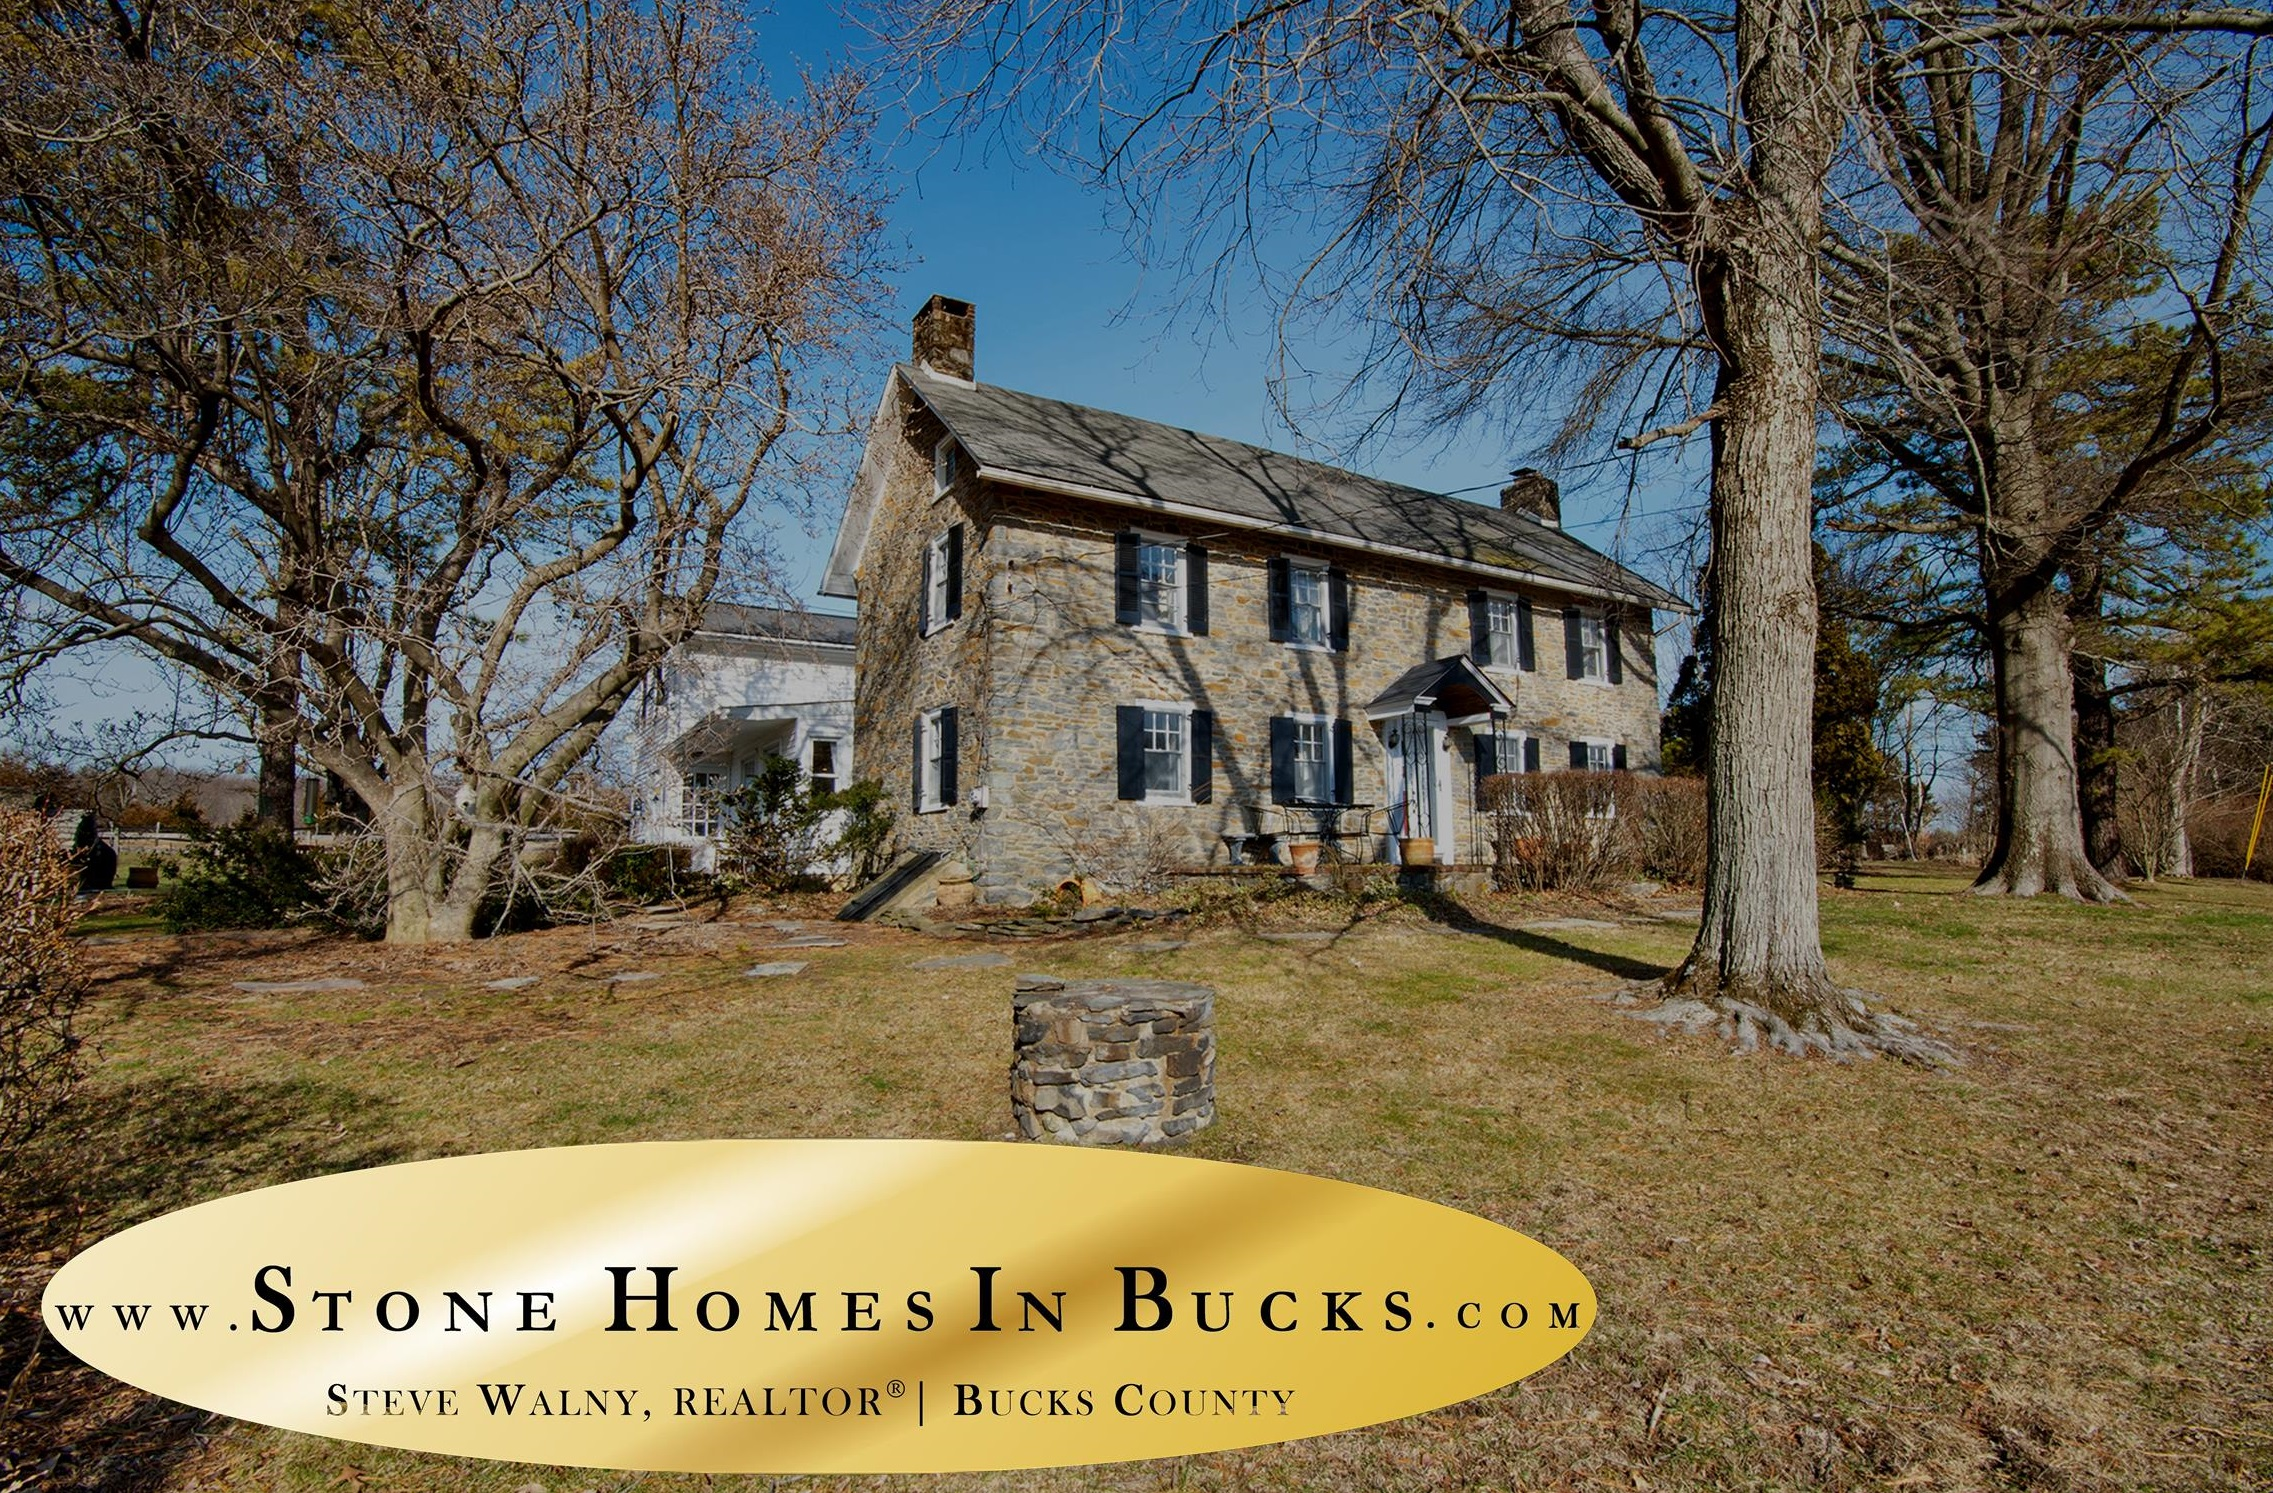 Stone Homes In Bucks | Penn-Walton Homestead Bucks County | Bucks County Farm House for Sale | Upper Bucks Countryside | Weidel Real Estate | Weidel Realtors | Doyelstown Realtors | New Hope Realtors | Steve Walny Weidel